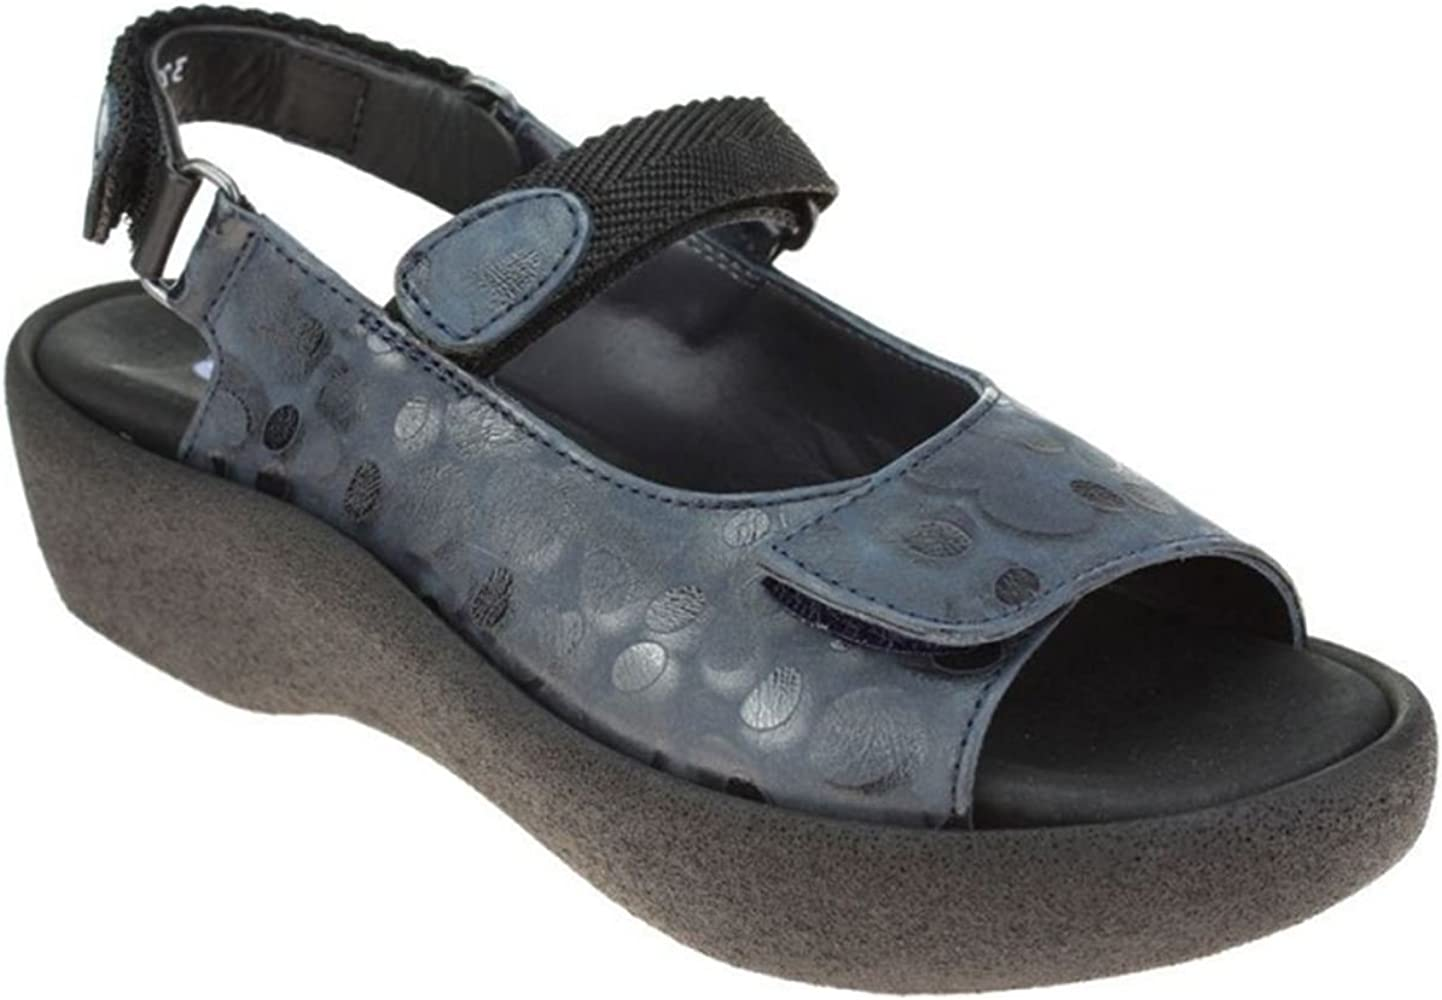 Wolky 1300 Salvia Black Womens Sandals